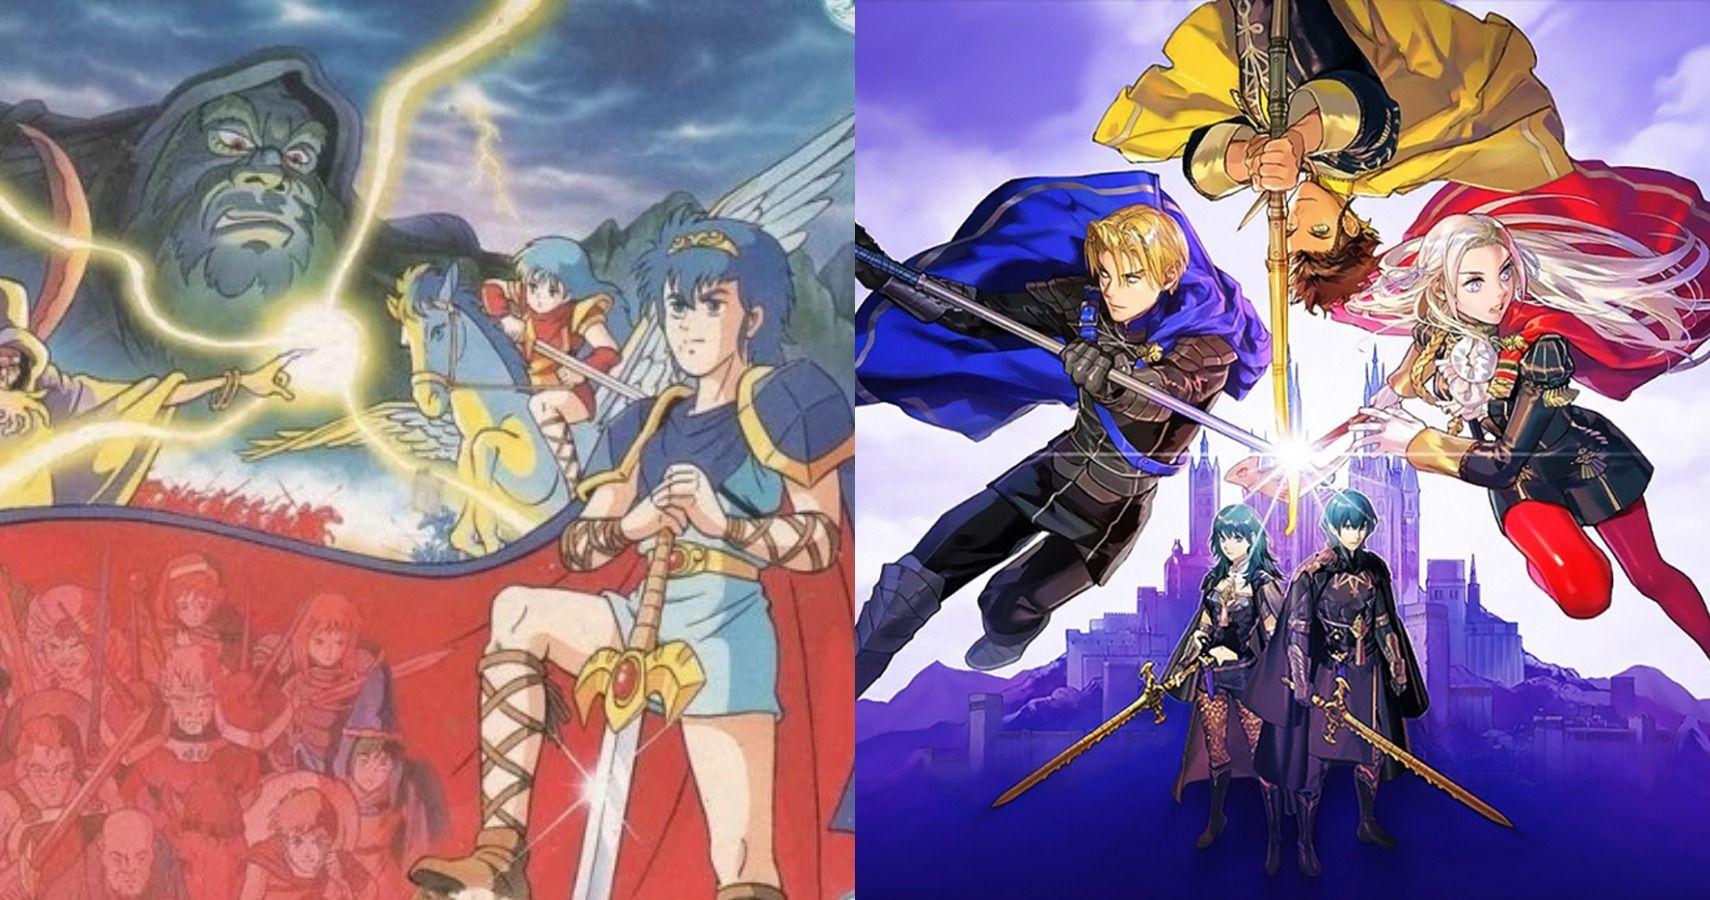 How - And When - Fire Emblem Took The West By Storm | TheGamer